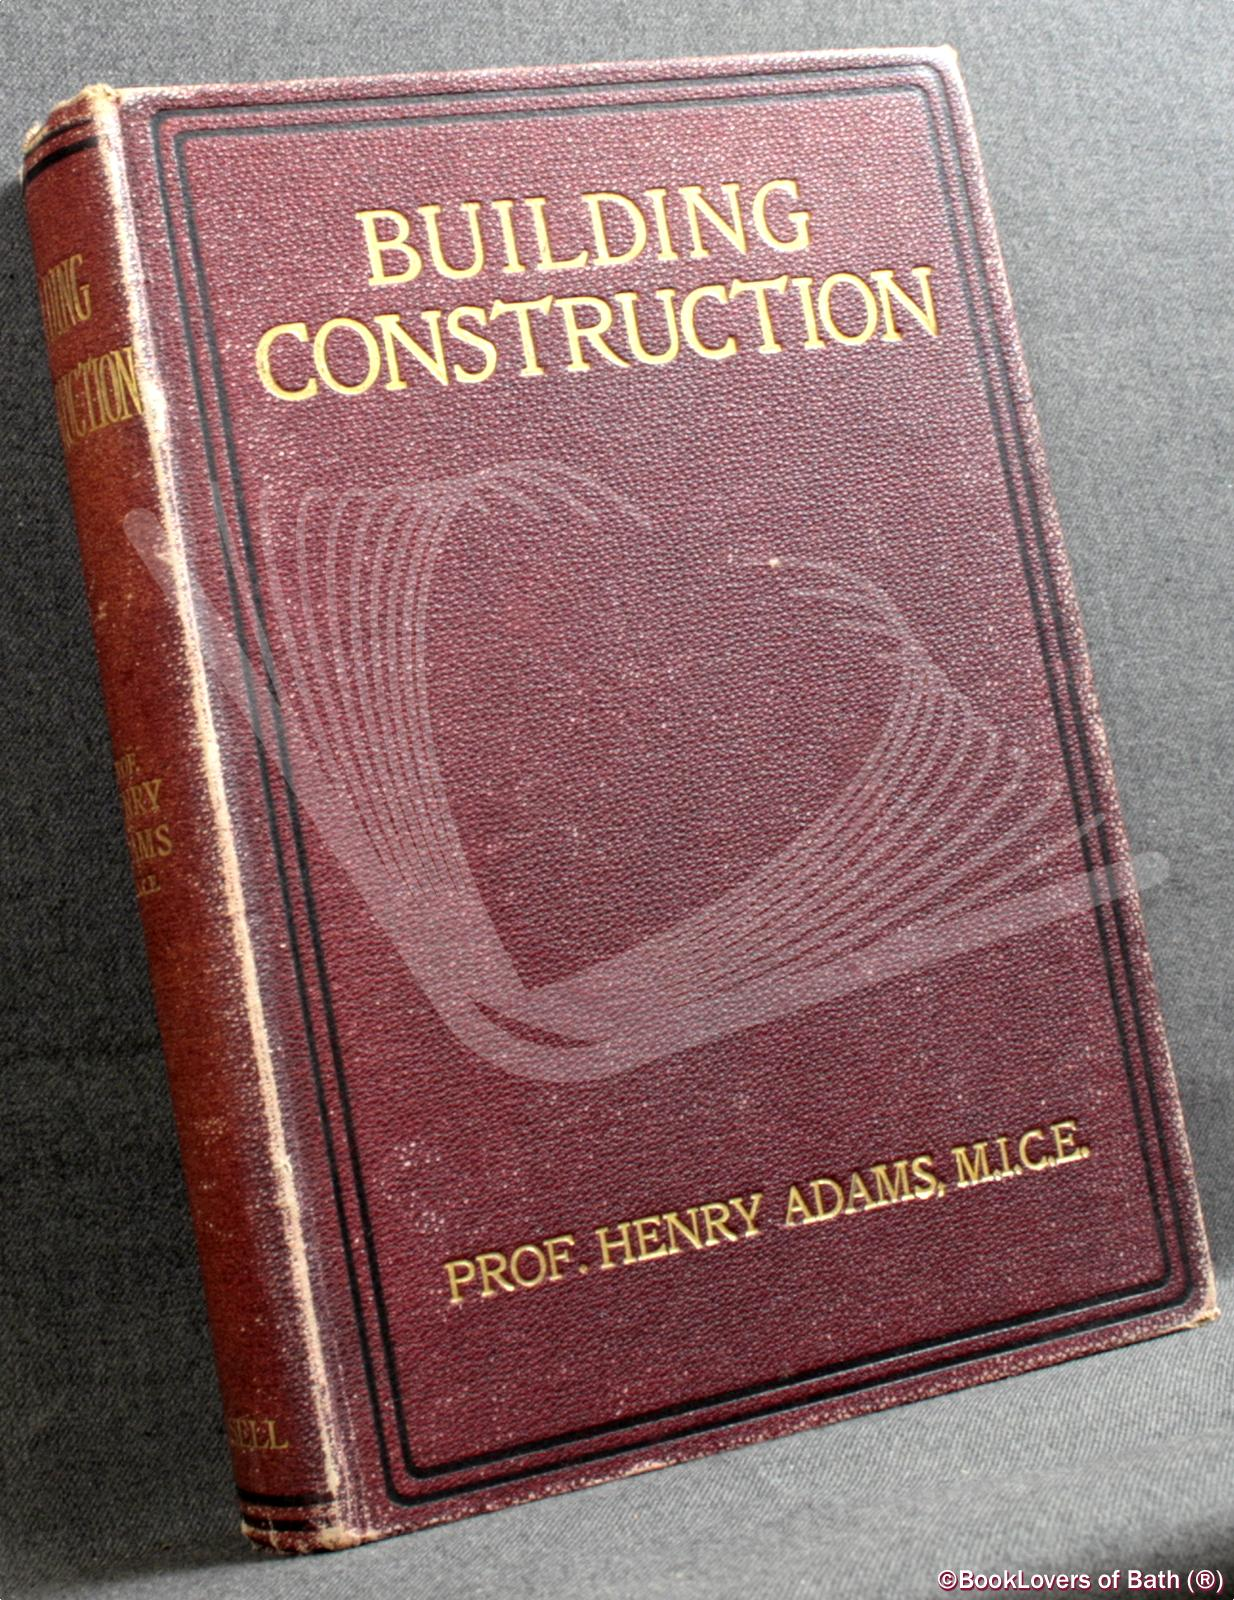 Cassell's Building Construction: Comprising Notes on Materials, Processes, Principles, & Practice - Henry Adams